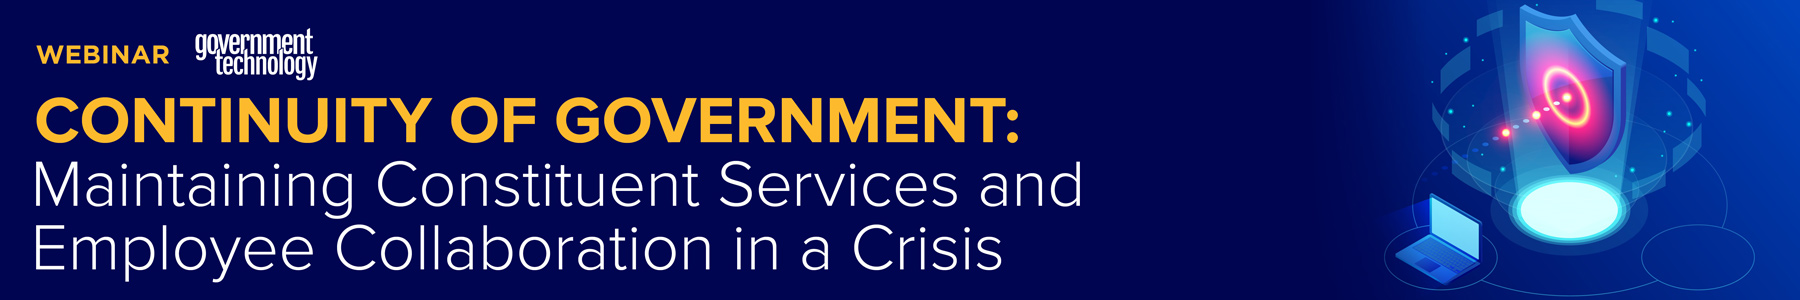 Continuity of Government: Maintaining Constituent Services and Employee Collaboration in a Crisis